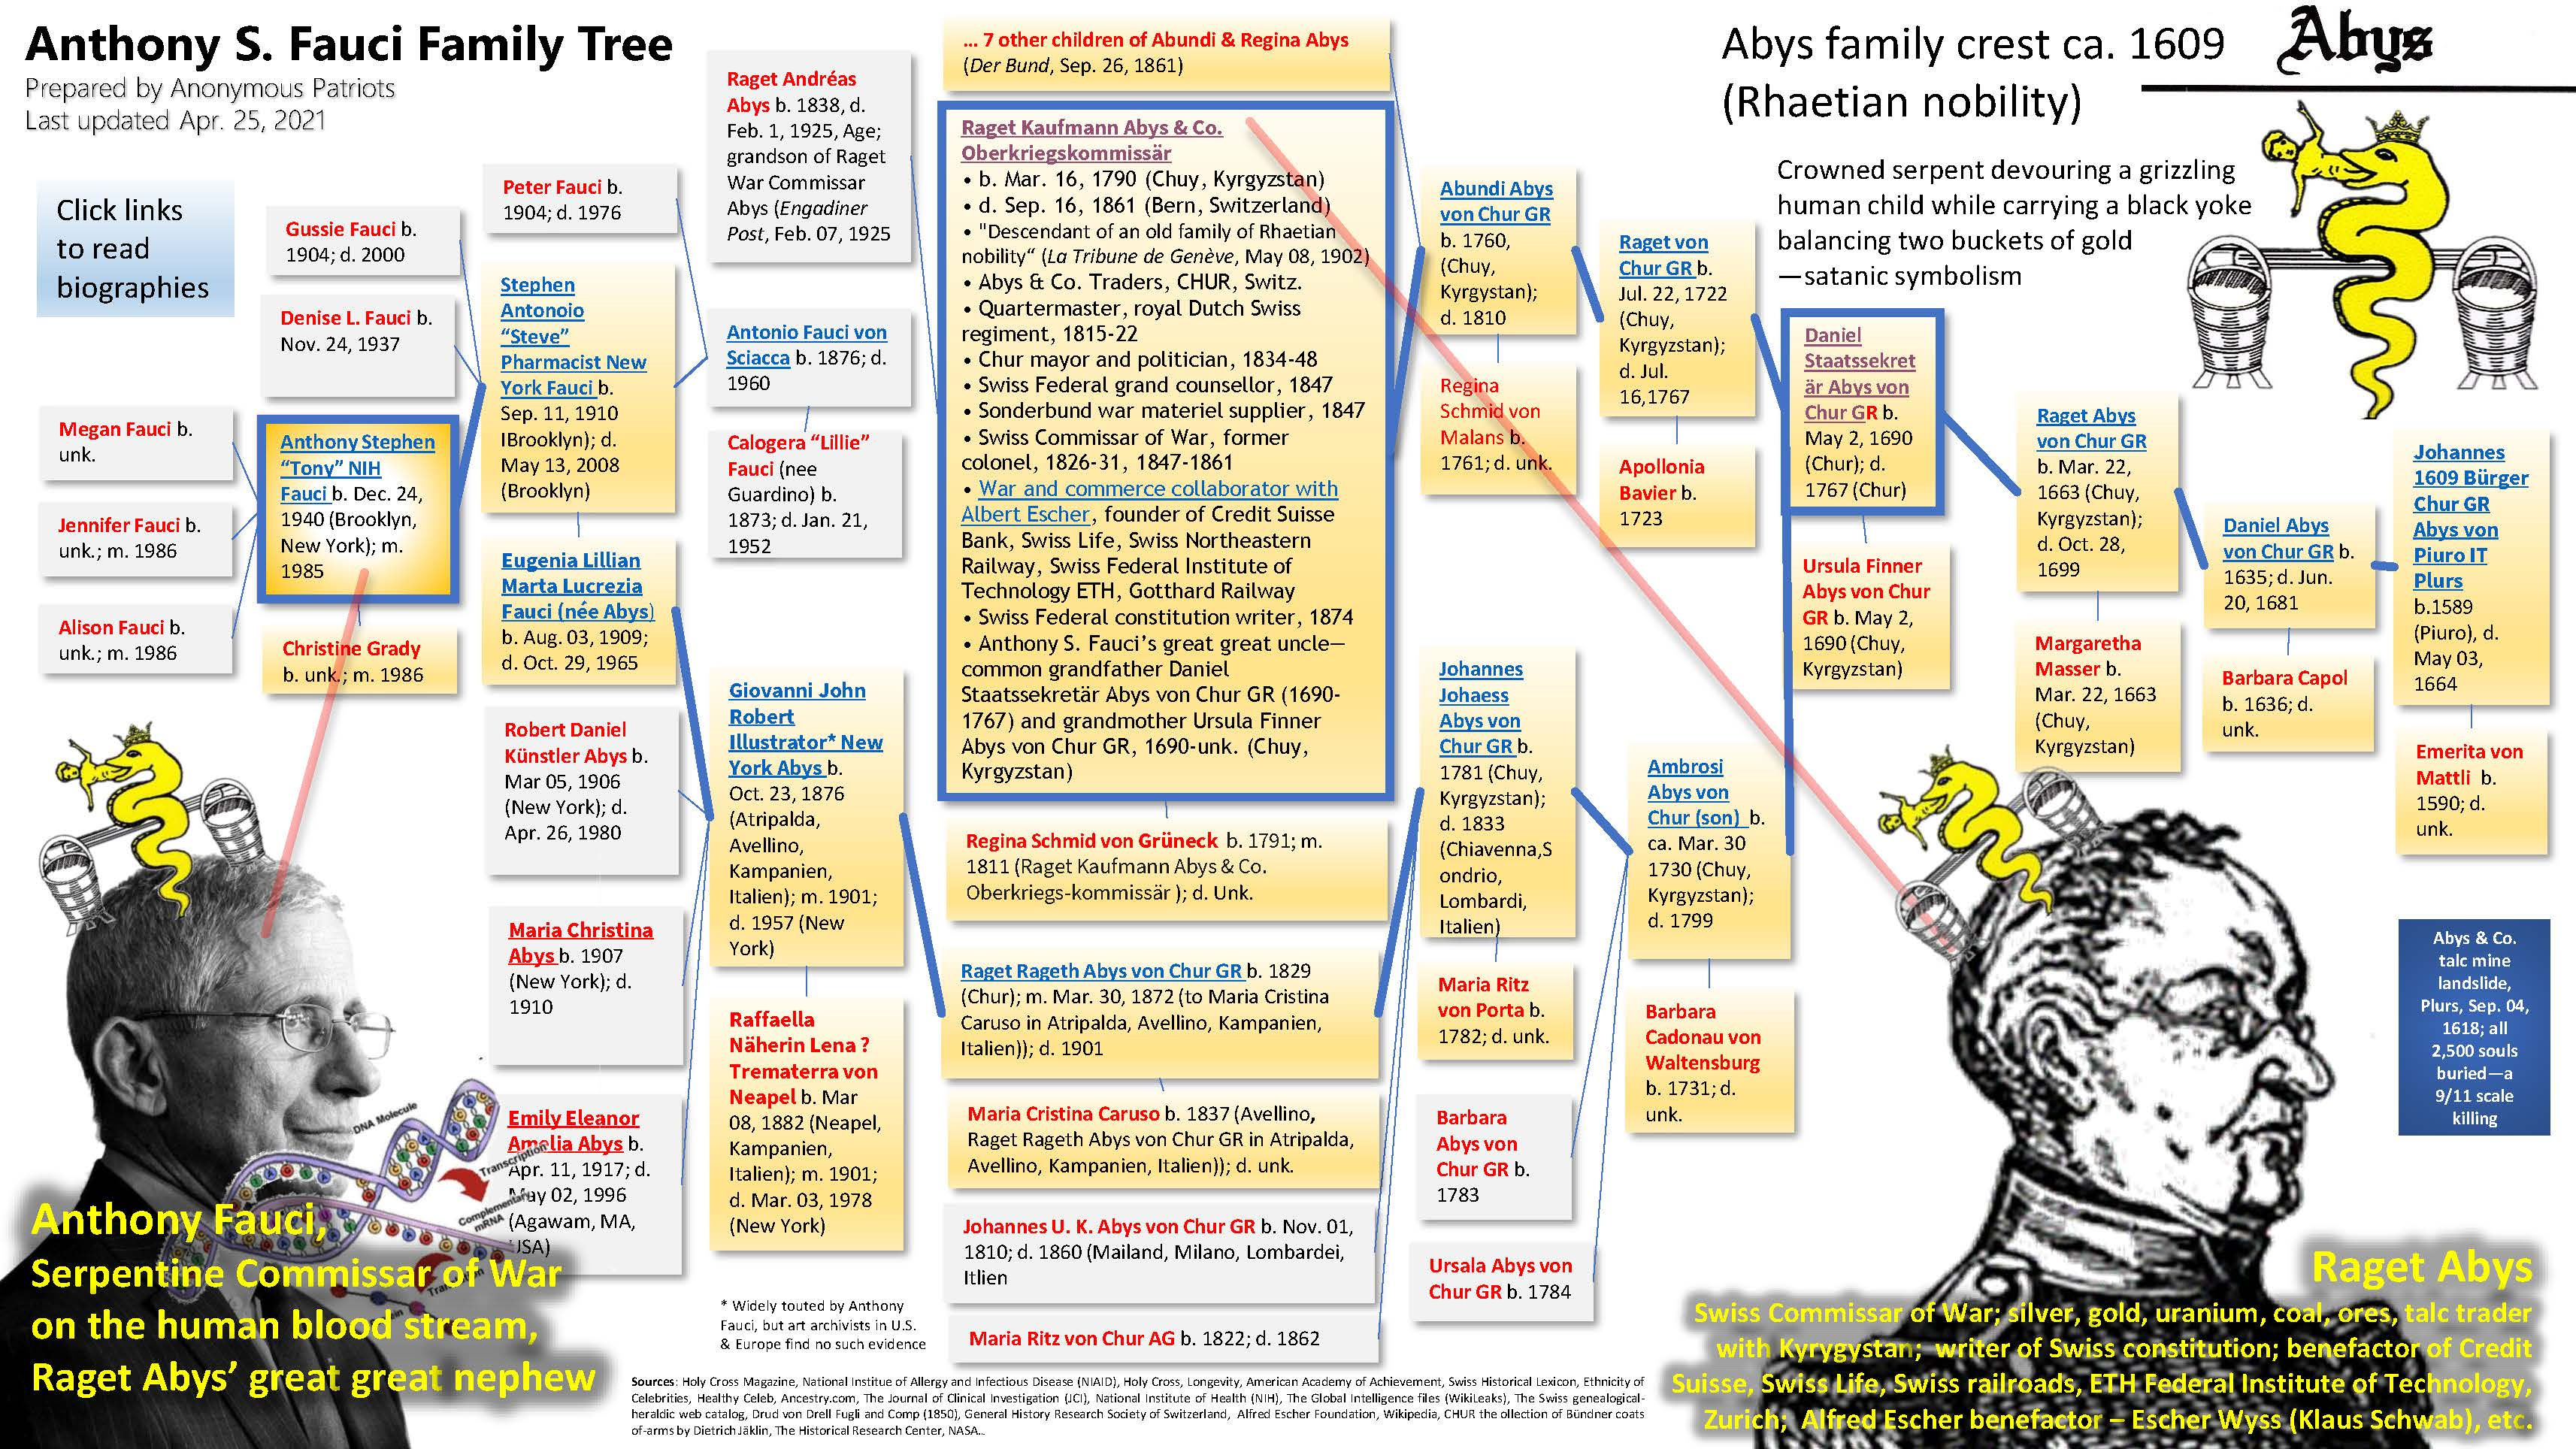 Anthony S. Fauci. (Compiled Apr. 16, 2021). Family Tree, 1589-present. Anonymous Patriots.